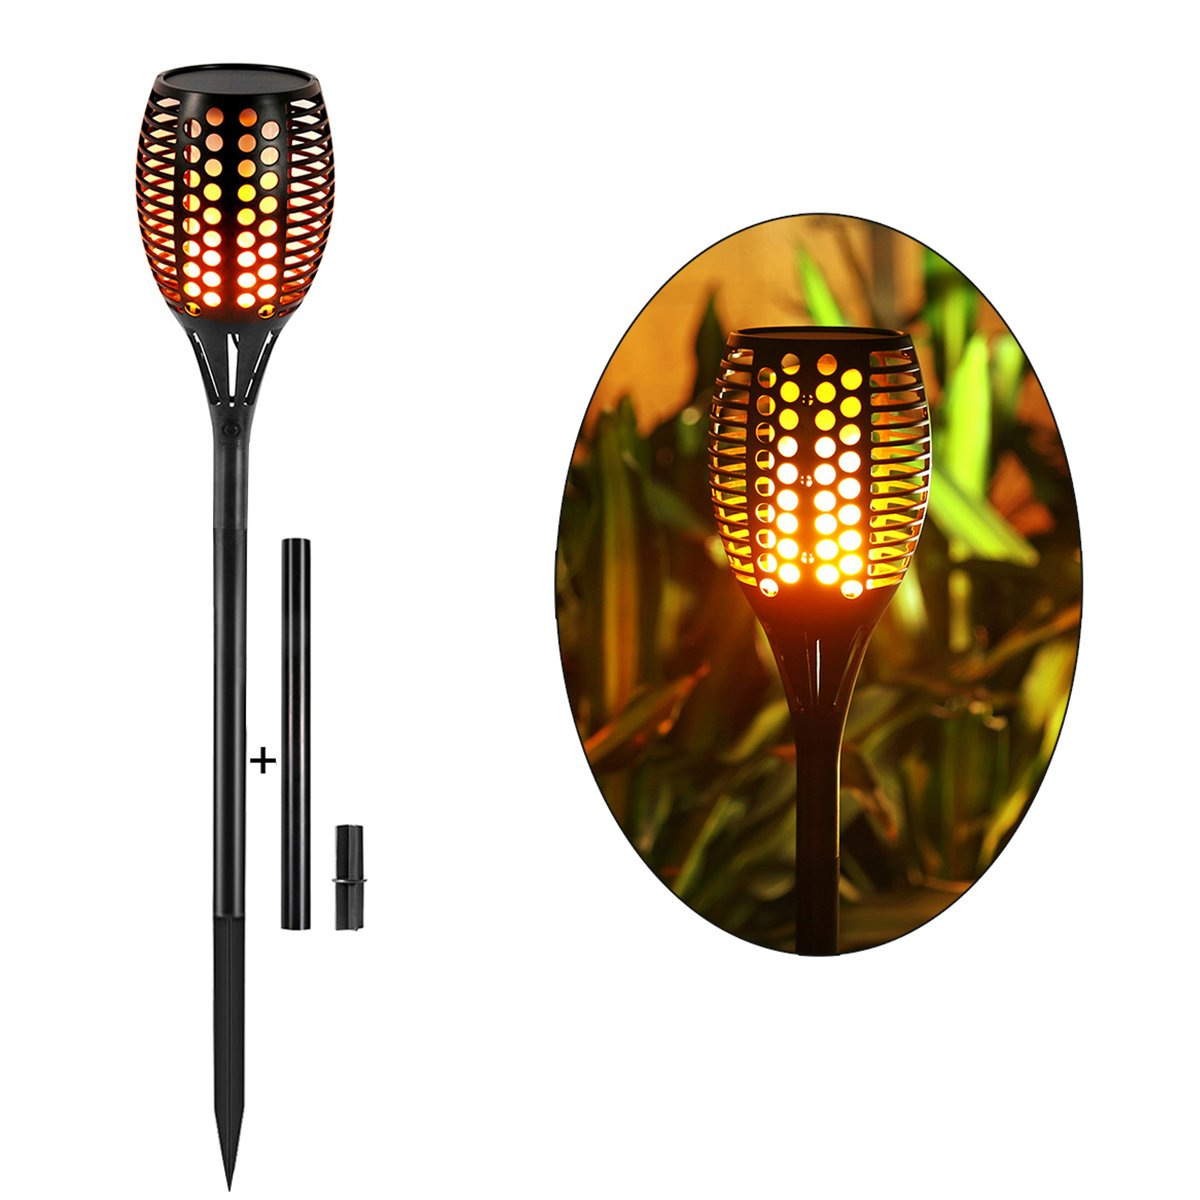 Solar Torch Lights,Balight Dancing Flame Lighting 96 LED Flickering Tiki  Torches Waterproof Wireless Outdoor Light ...